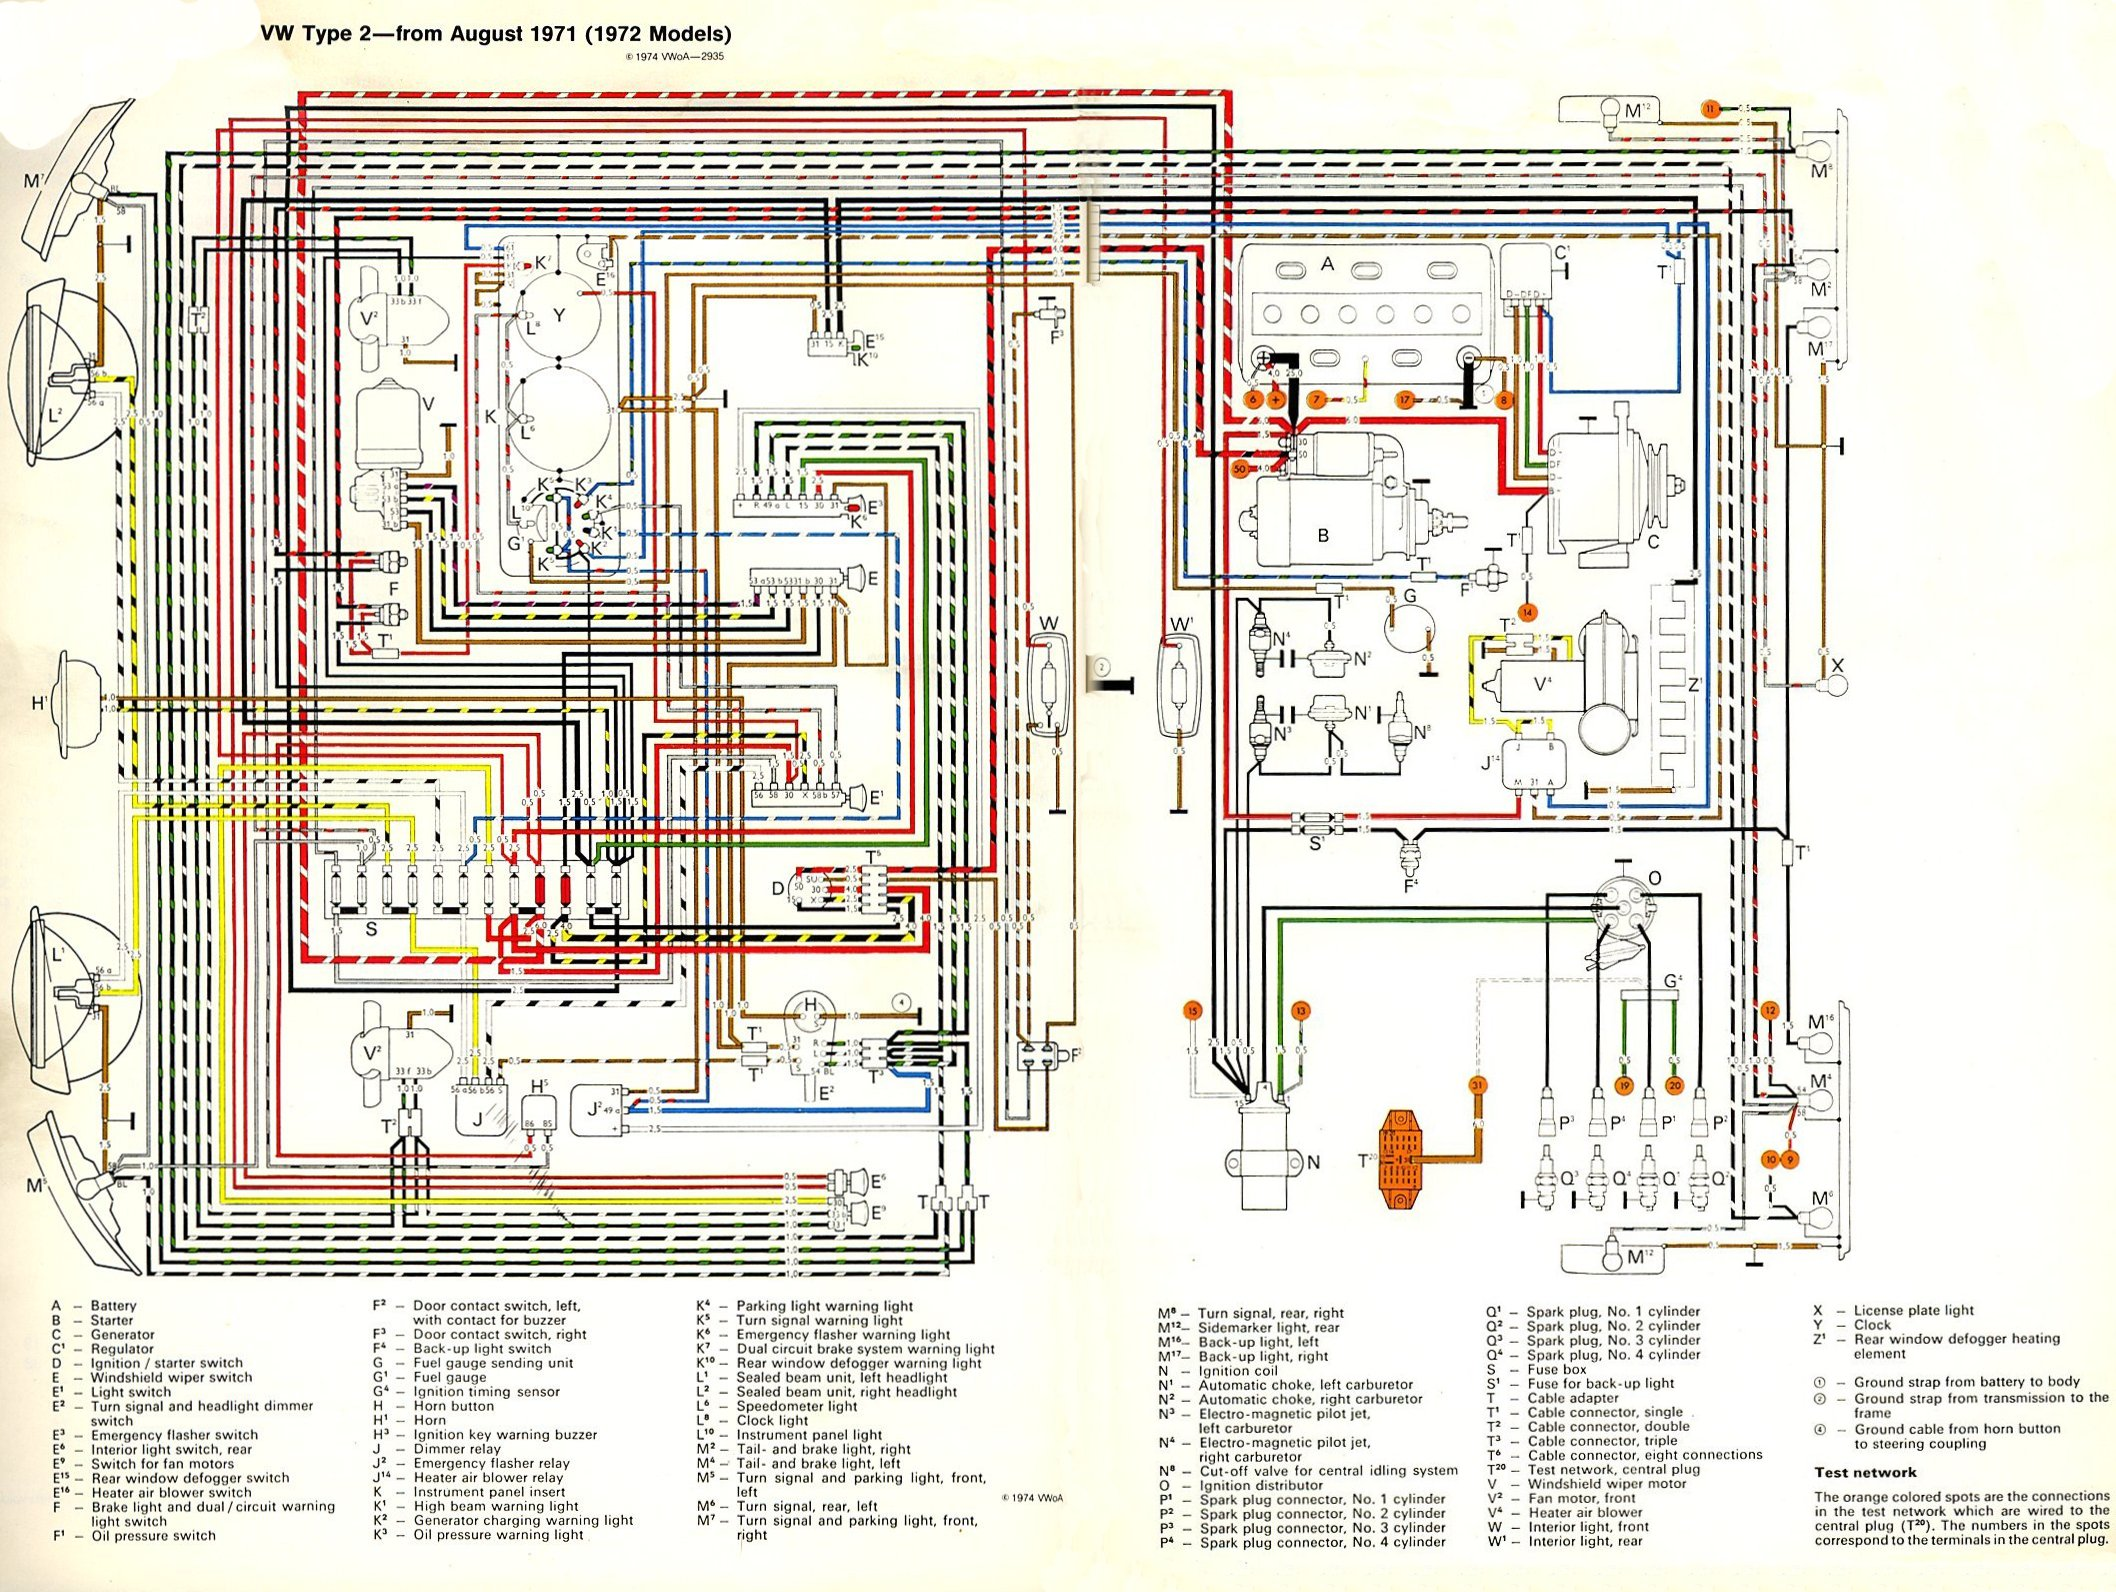 bus_1972_wiring bus_1972_wiring jpg (2116�1592) wire pinterest kombi camper vw t4 fuse box wiring diagram at cos-gaming.co